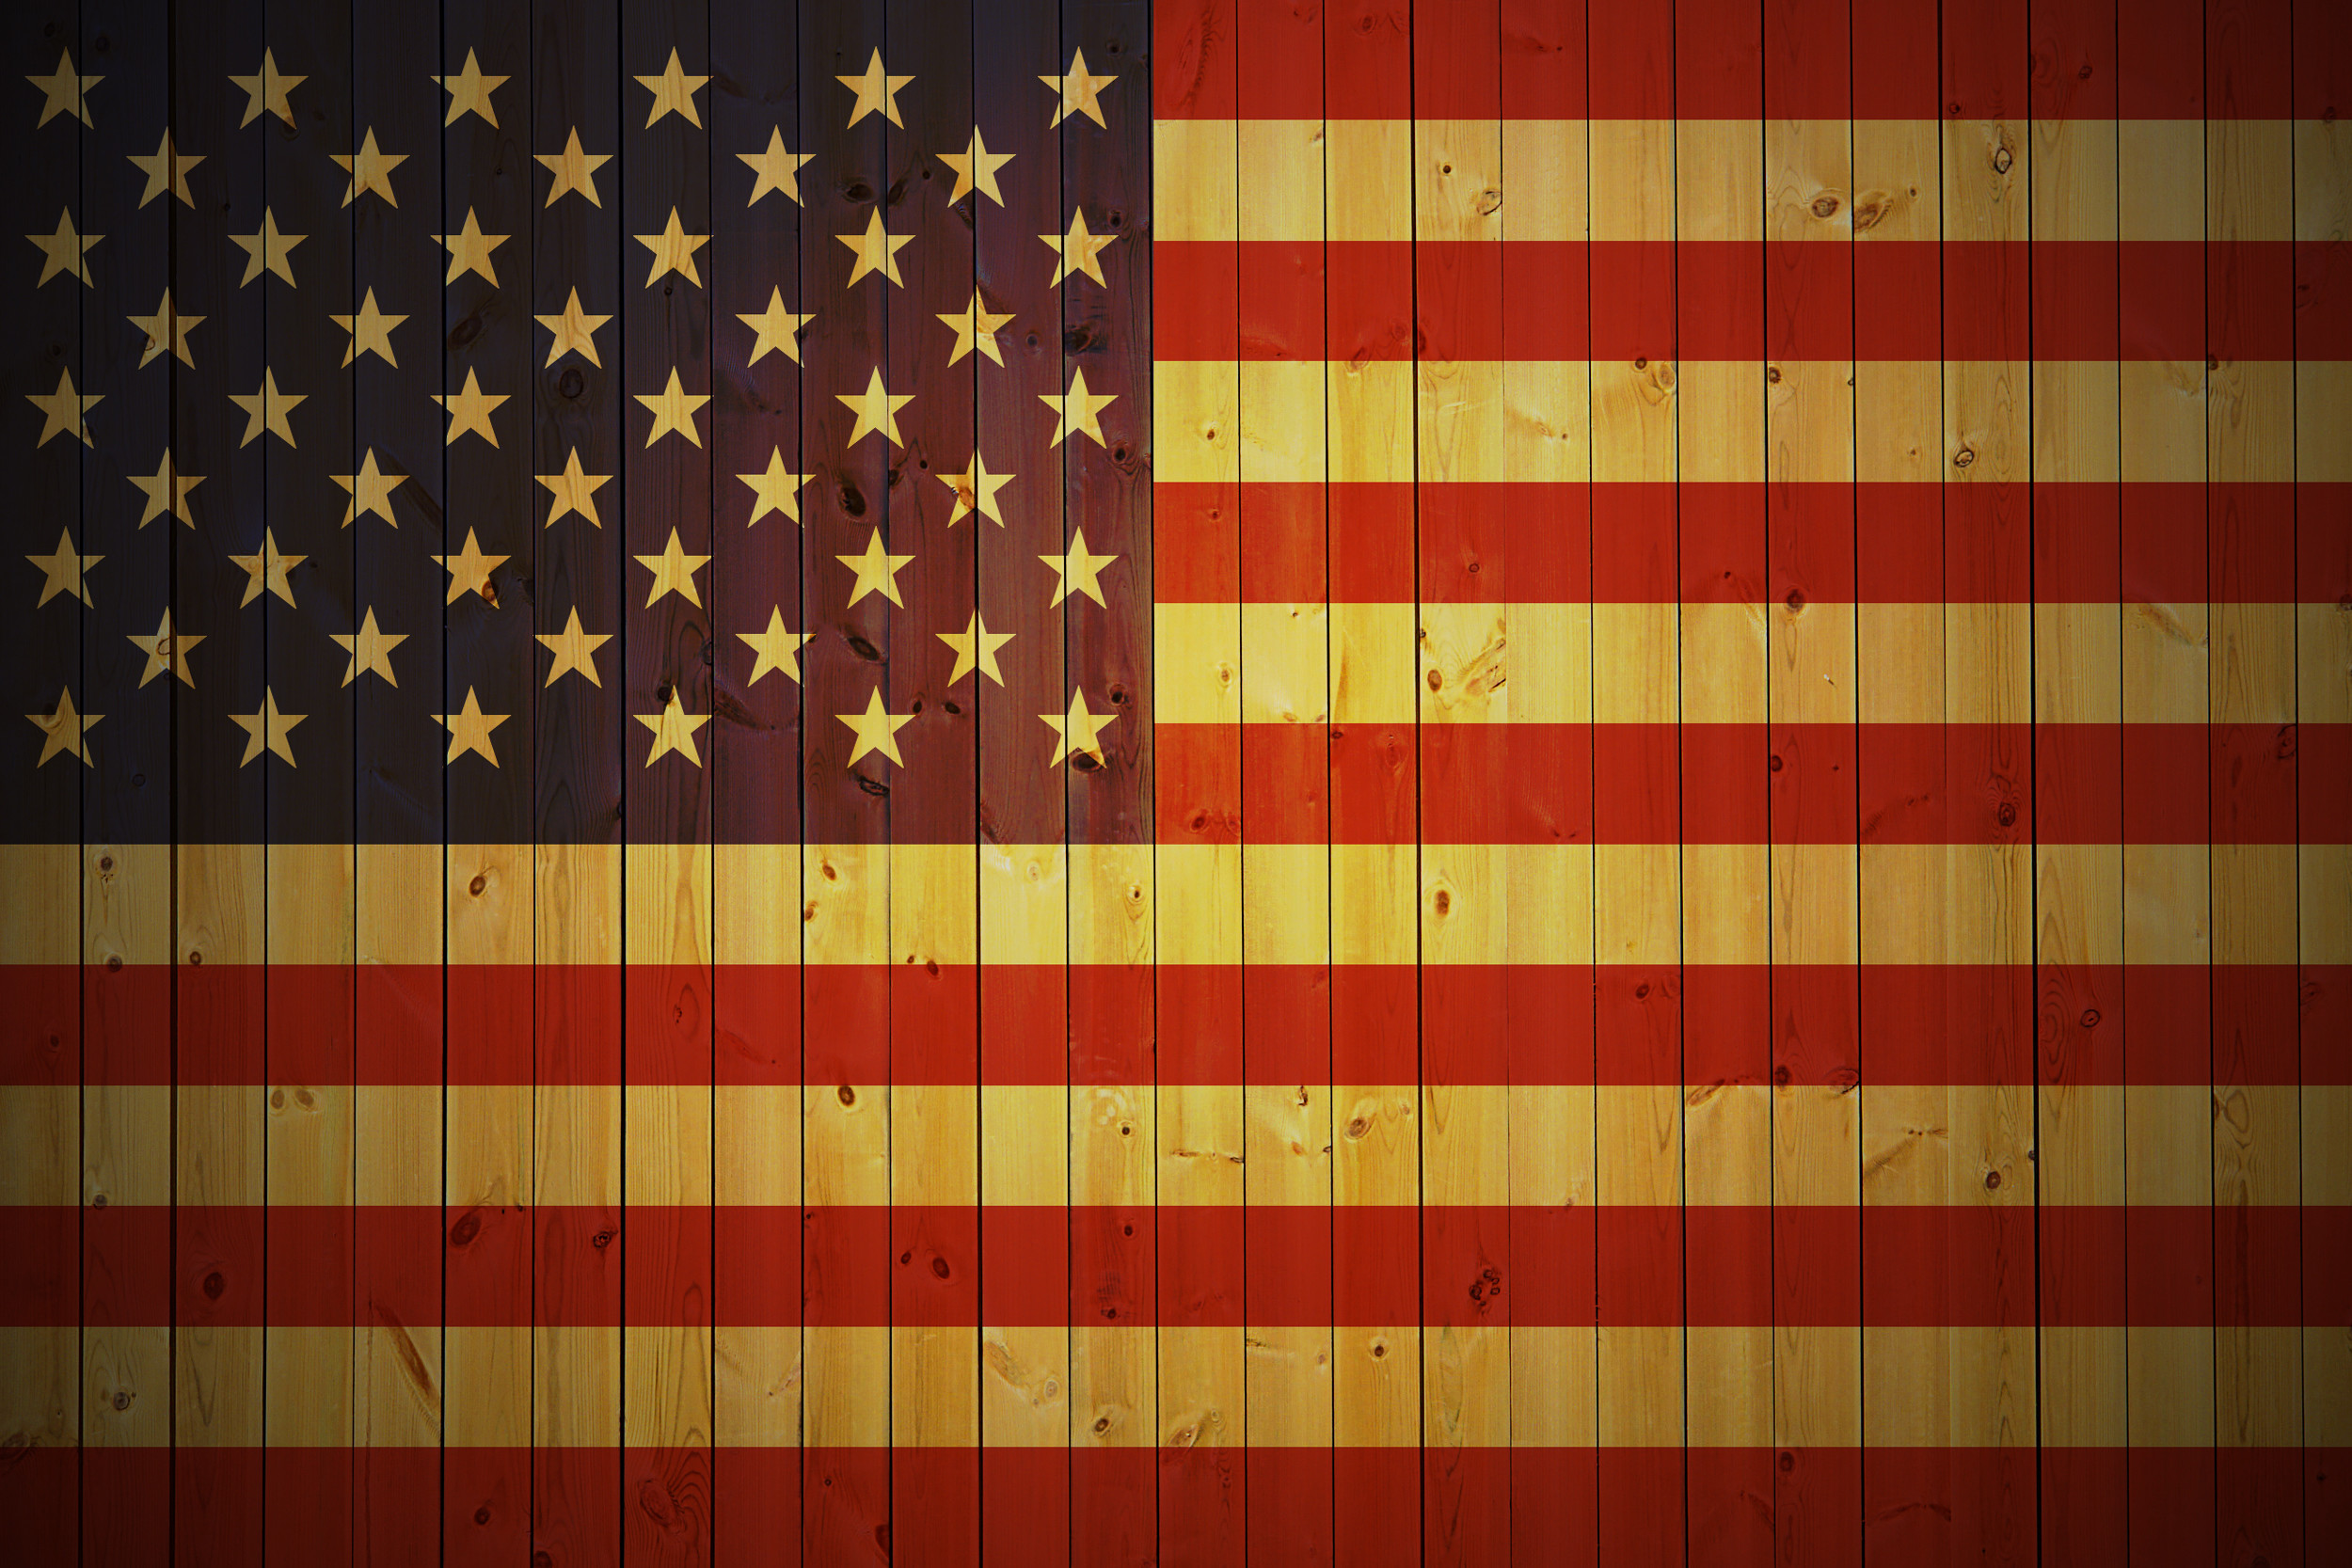 2500x1667 USA Flag American Flag Wallpaper HD.